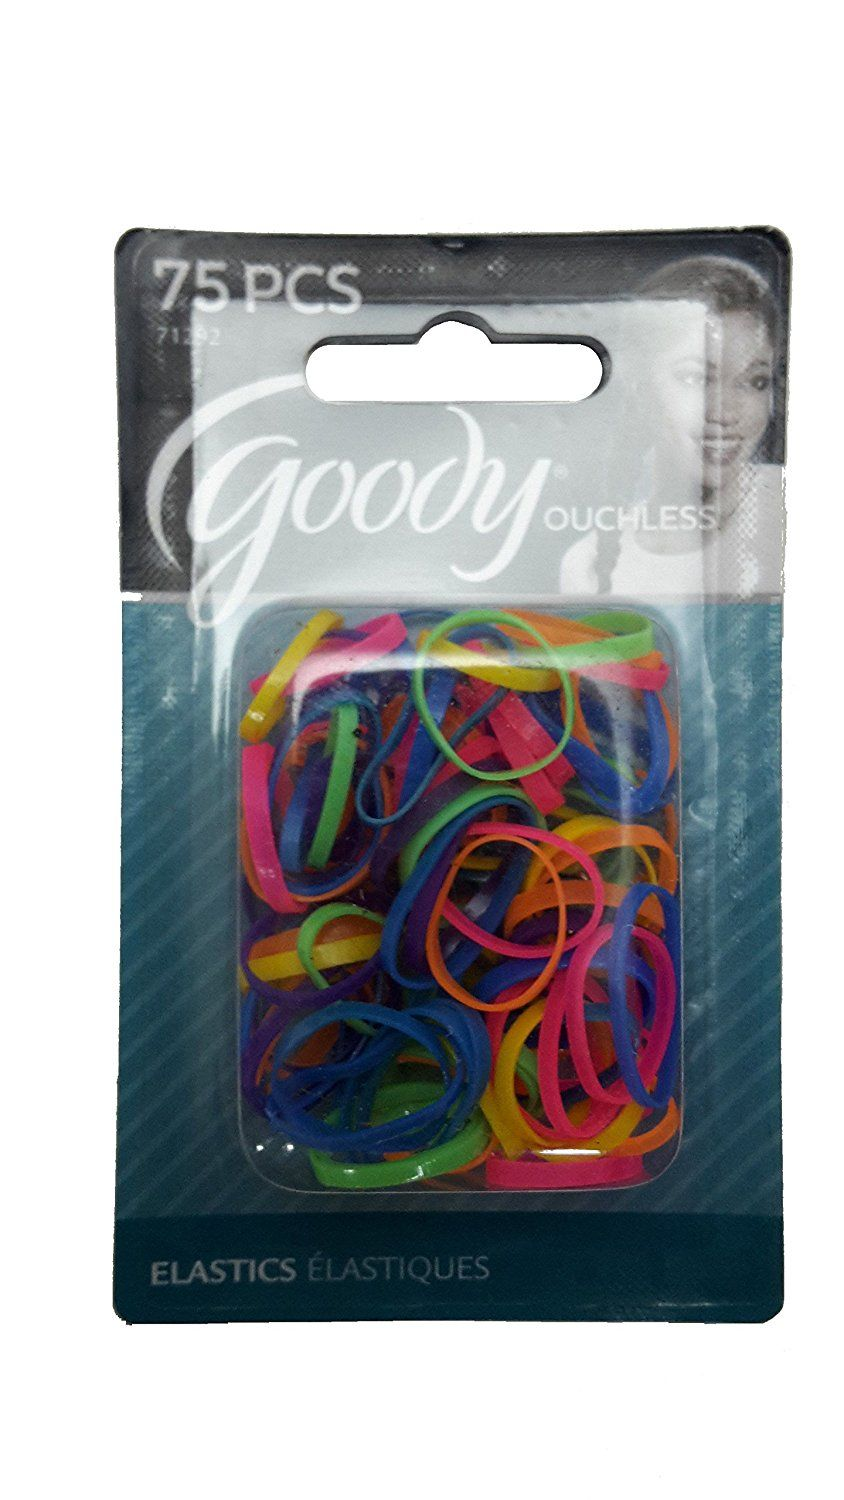 Goody Womens Classic Mini Neon Assorted Colors Polyband Elastics 75 Count  Item -71292    You can get more details by clicking on the image. 56621f9ac04